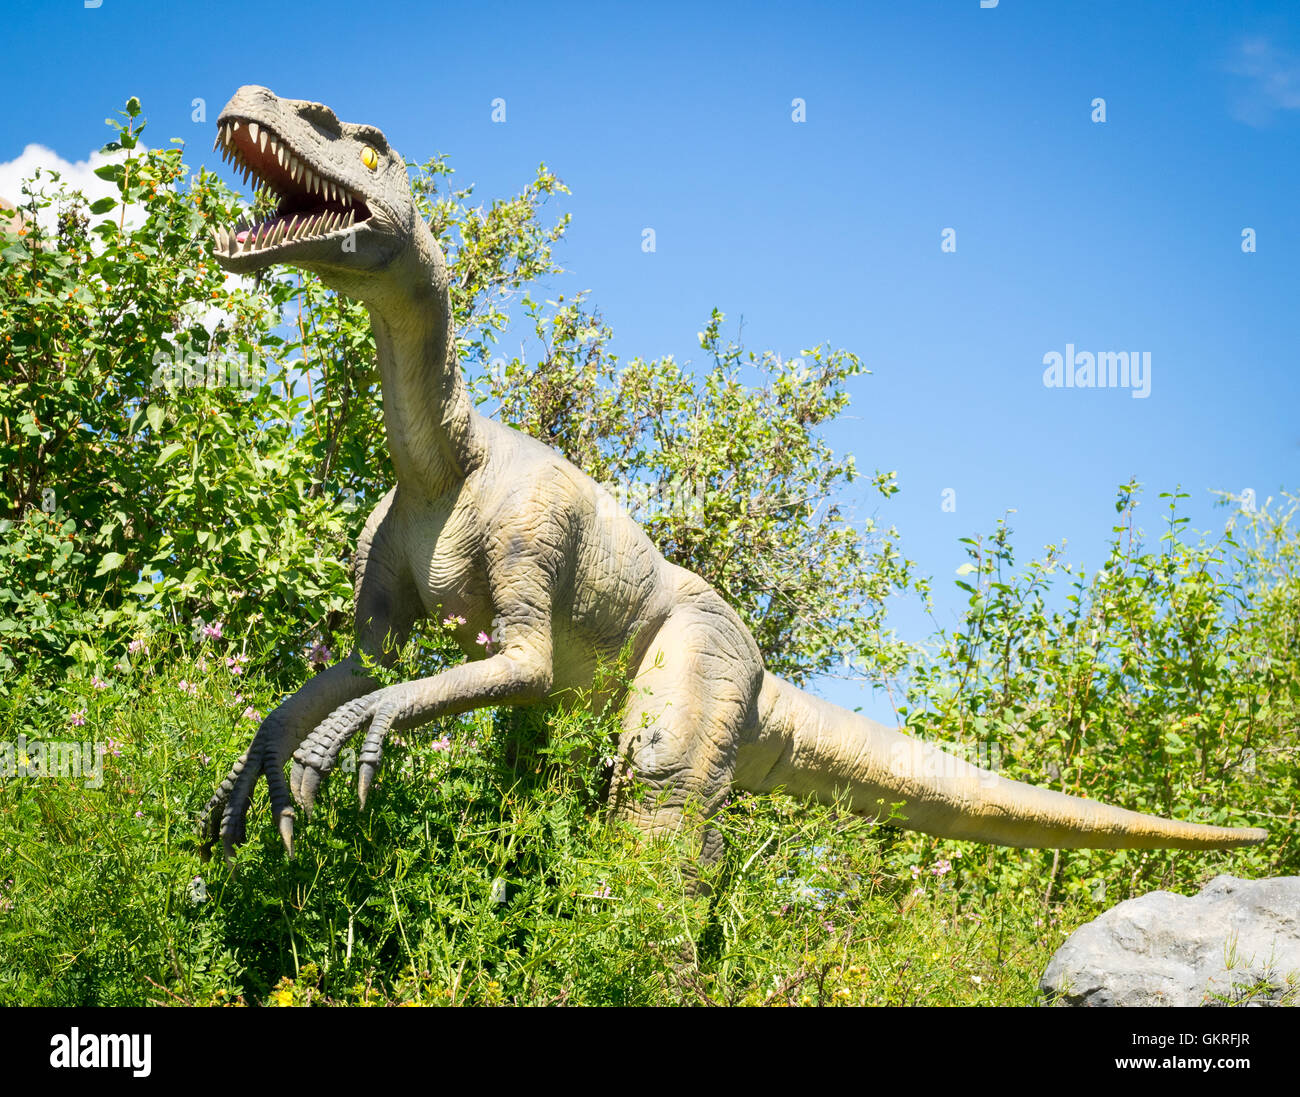 A model replica of a Yangchuanosaurus, an extinct genus of metriacanthosaurid theropod dinosaur, at the Calgary - Stock Image